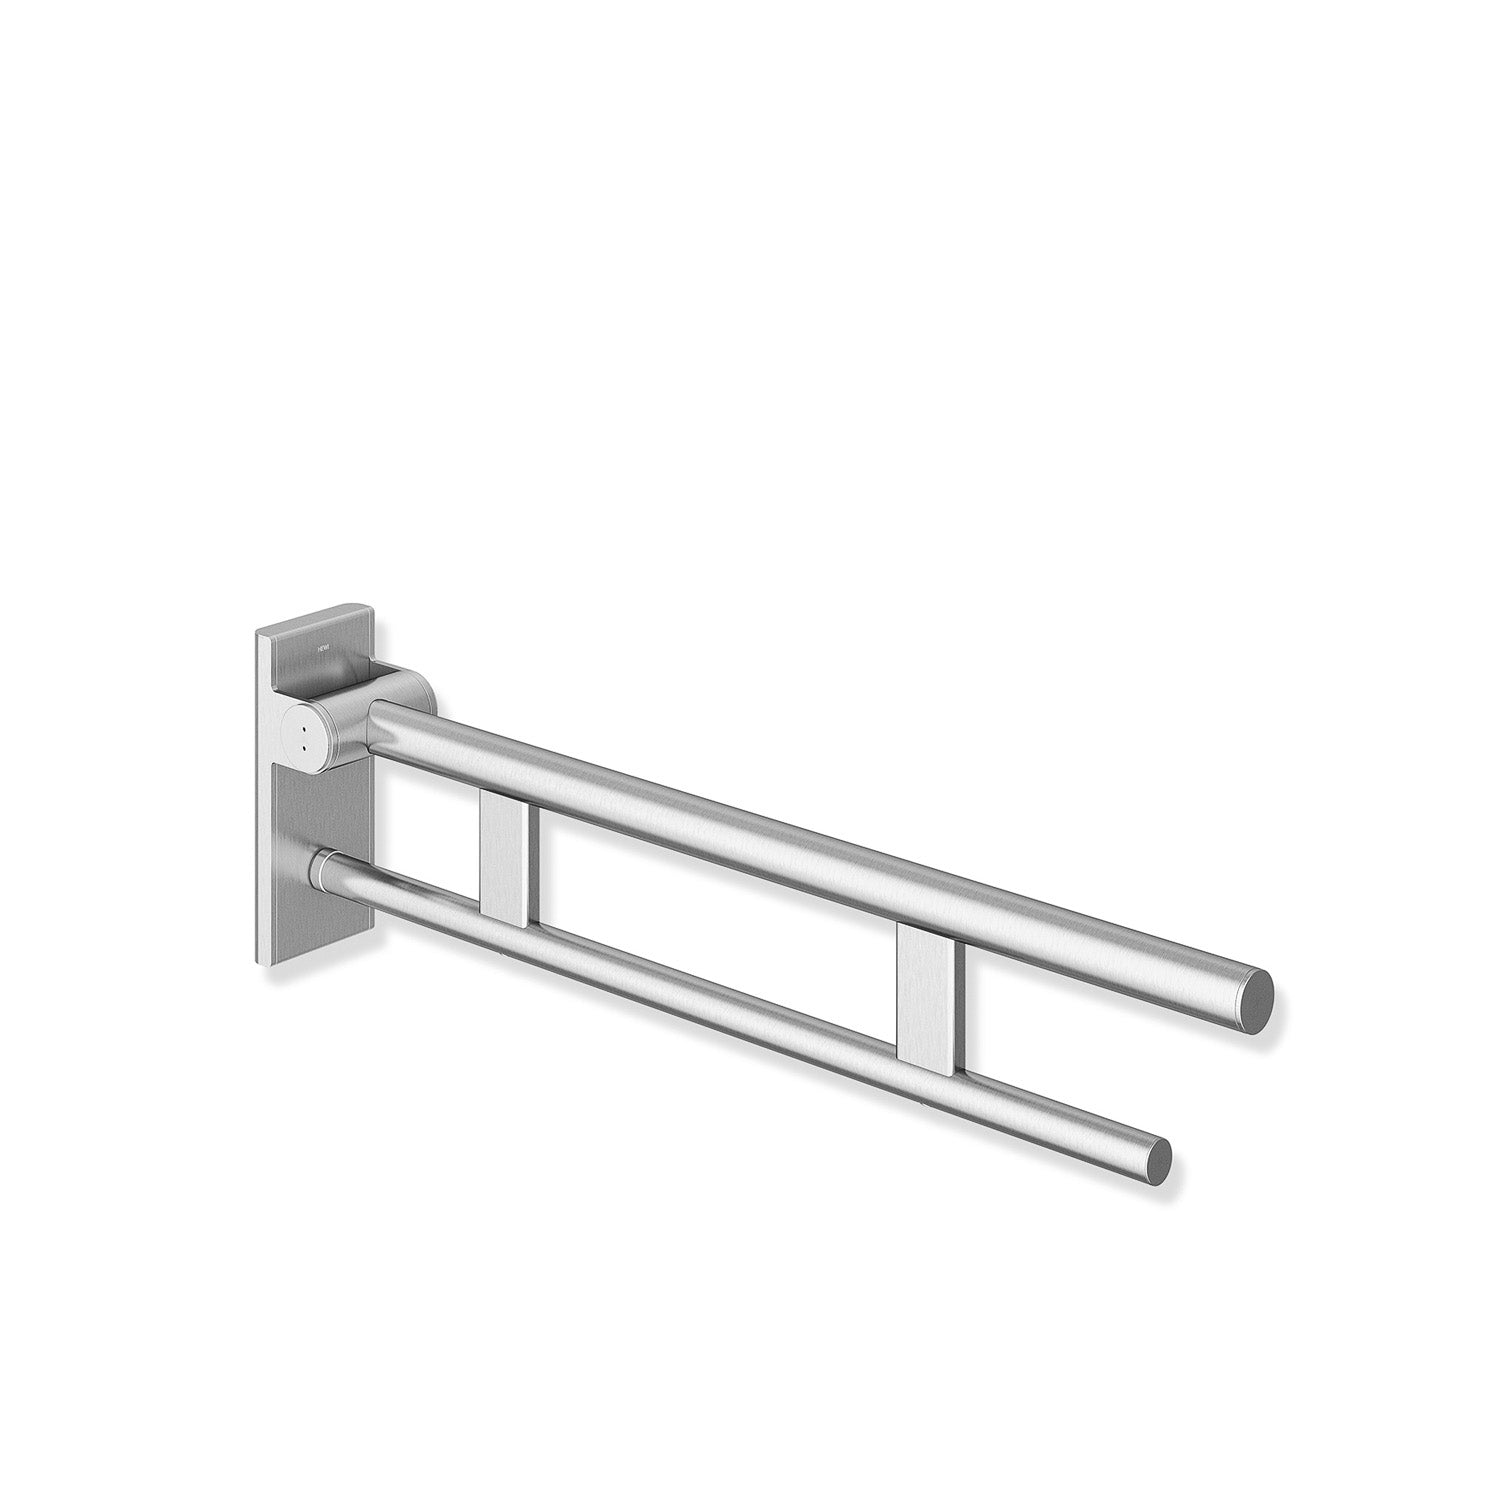 850mm Freestyle Removable Hinged Grab Rail Set with a satin steel finish on a white background